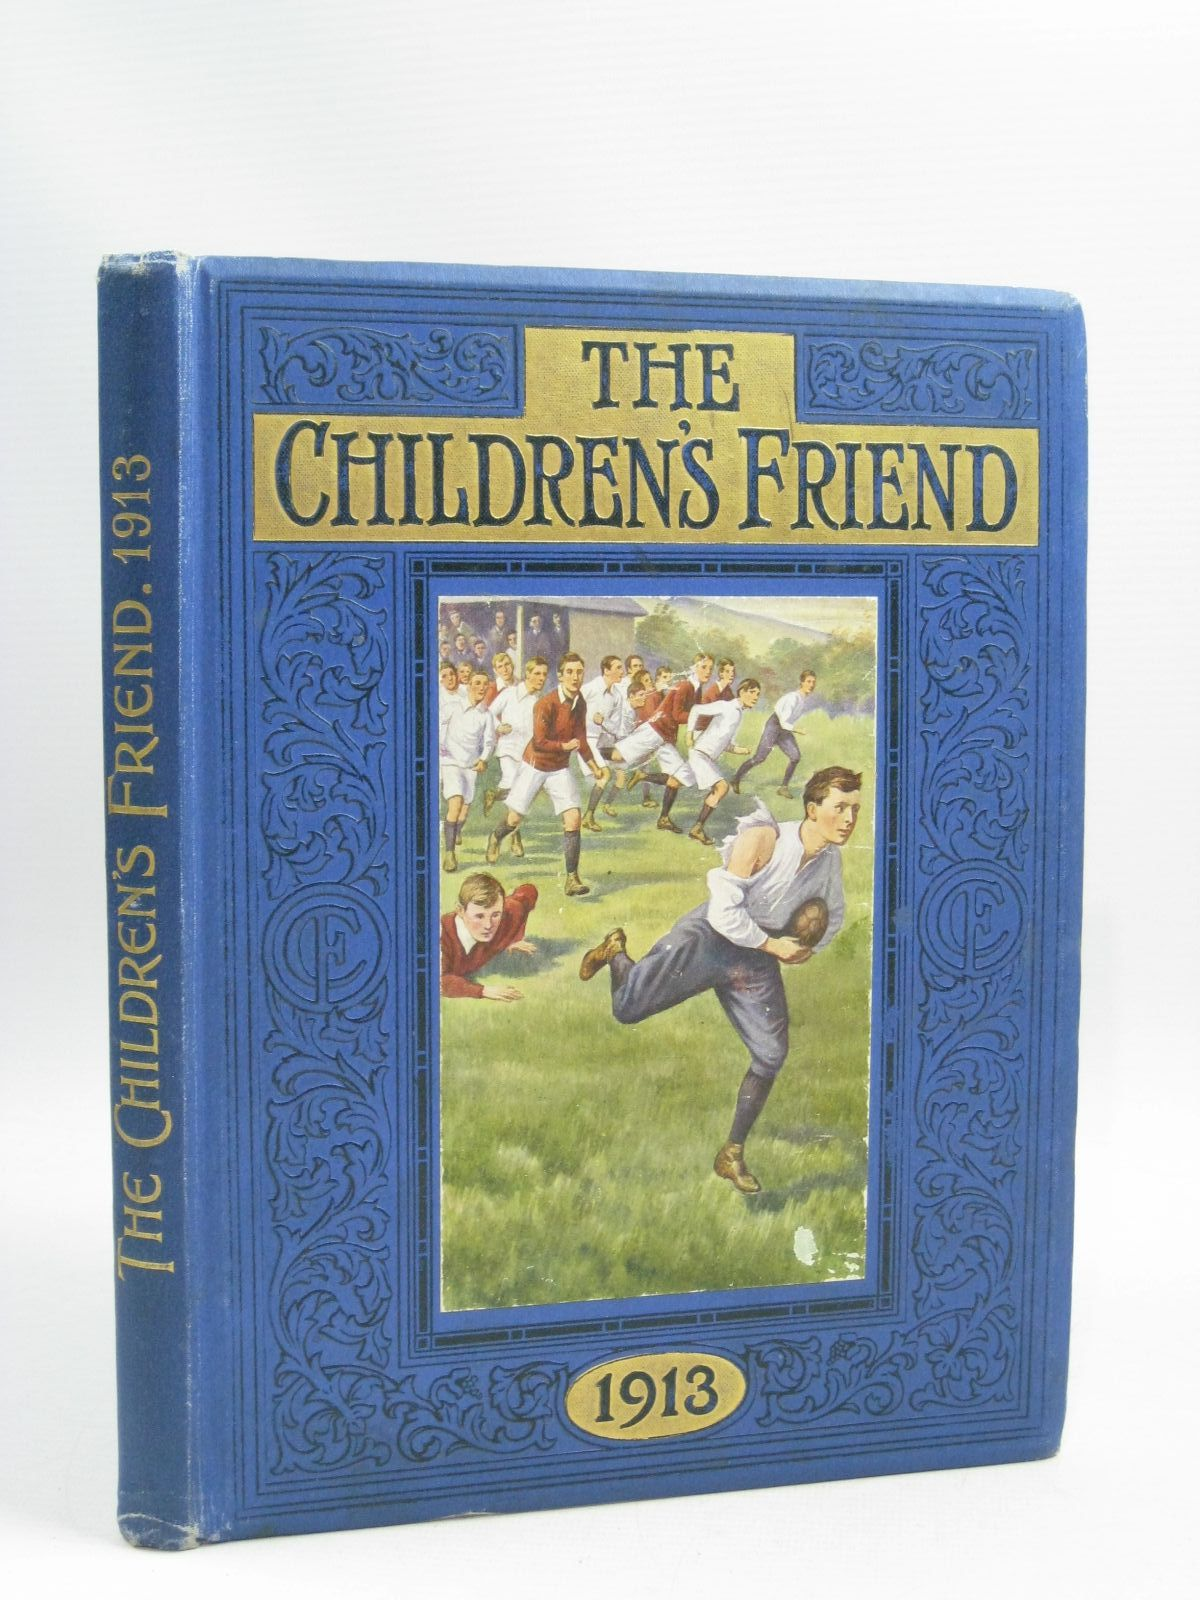 Photo of THE CHILDREN'S FRIEND AND PLAY-HOUR COMPANION 1913 written by Aitken, W. Francis published by S.W. Partridge & Co. Ltd. (STOCK CODE: 1315264)  for sale by Stella & Rose's Books